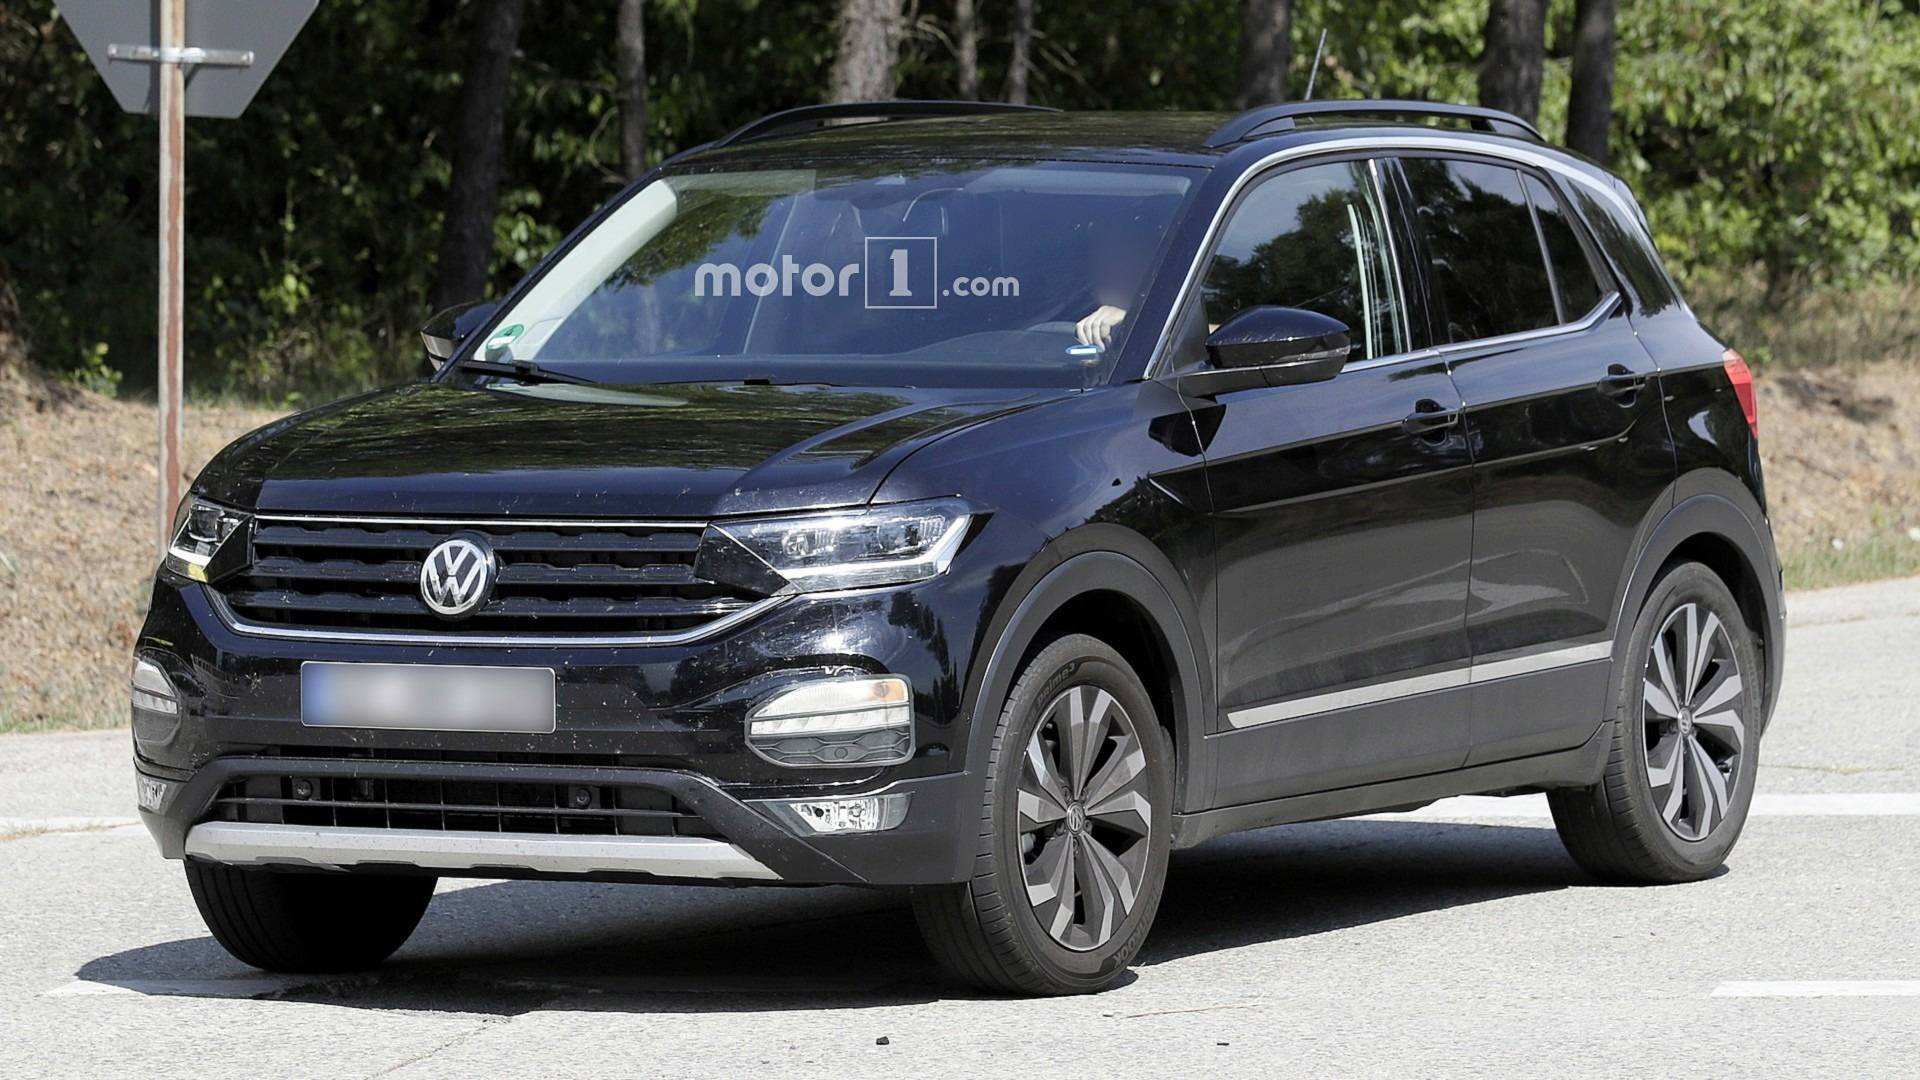 43 New 2019 Volkswagen Crossover Price with 2019 Volkswagen Crossover